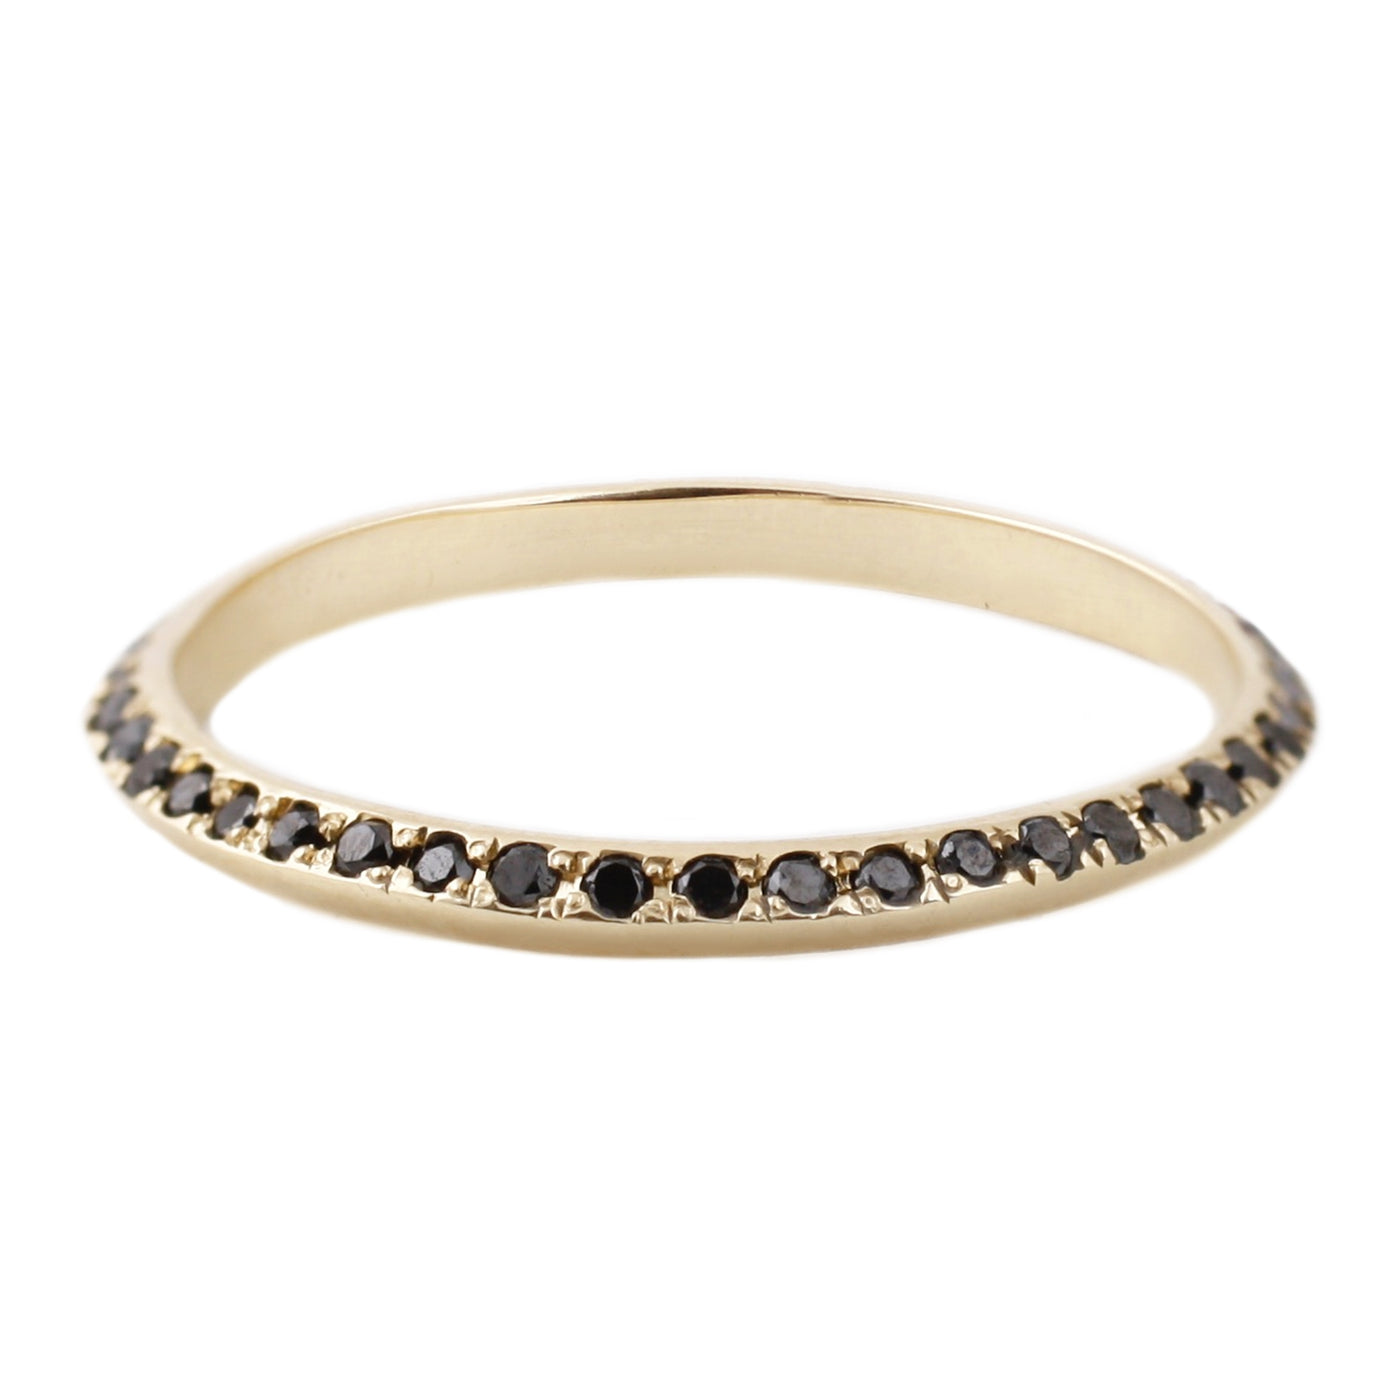 Adeline Gold Saturn Ring with black diamonds